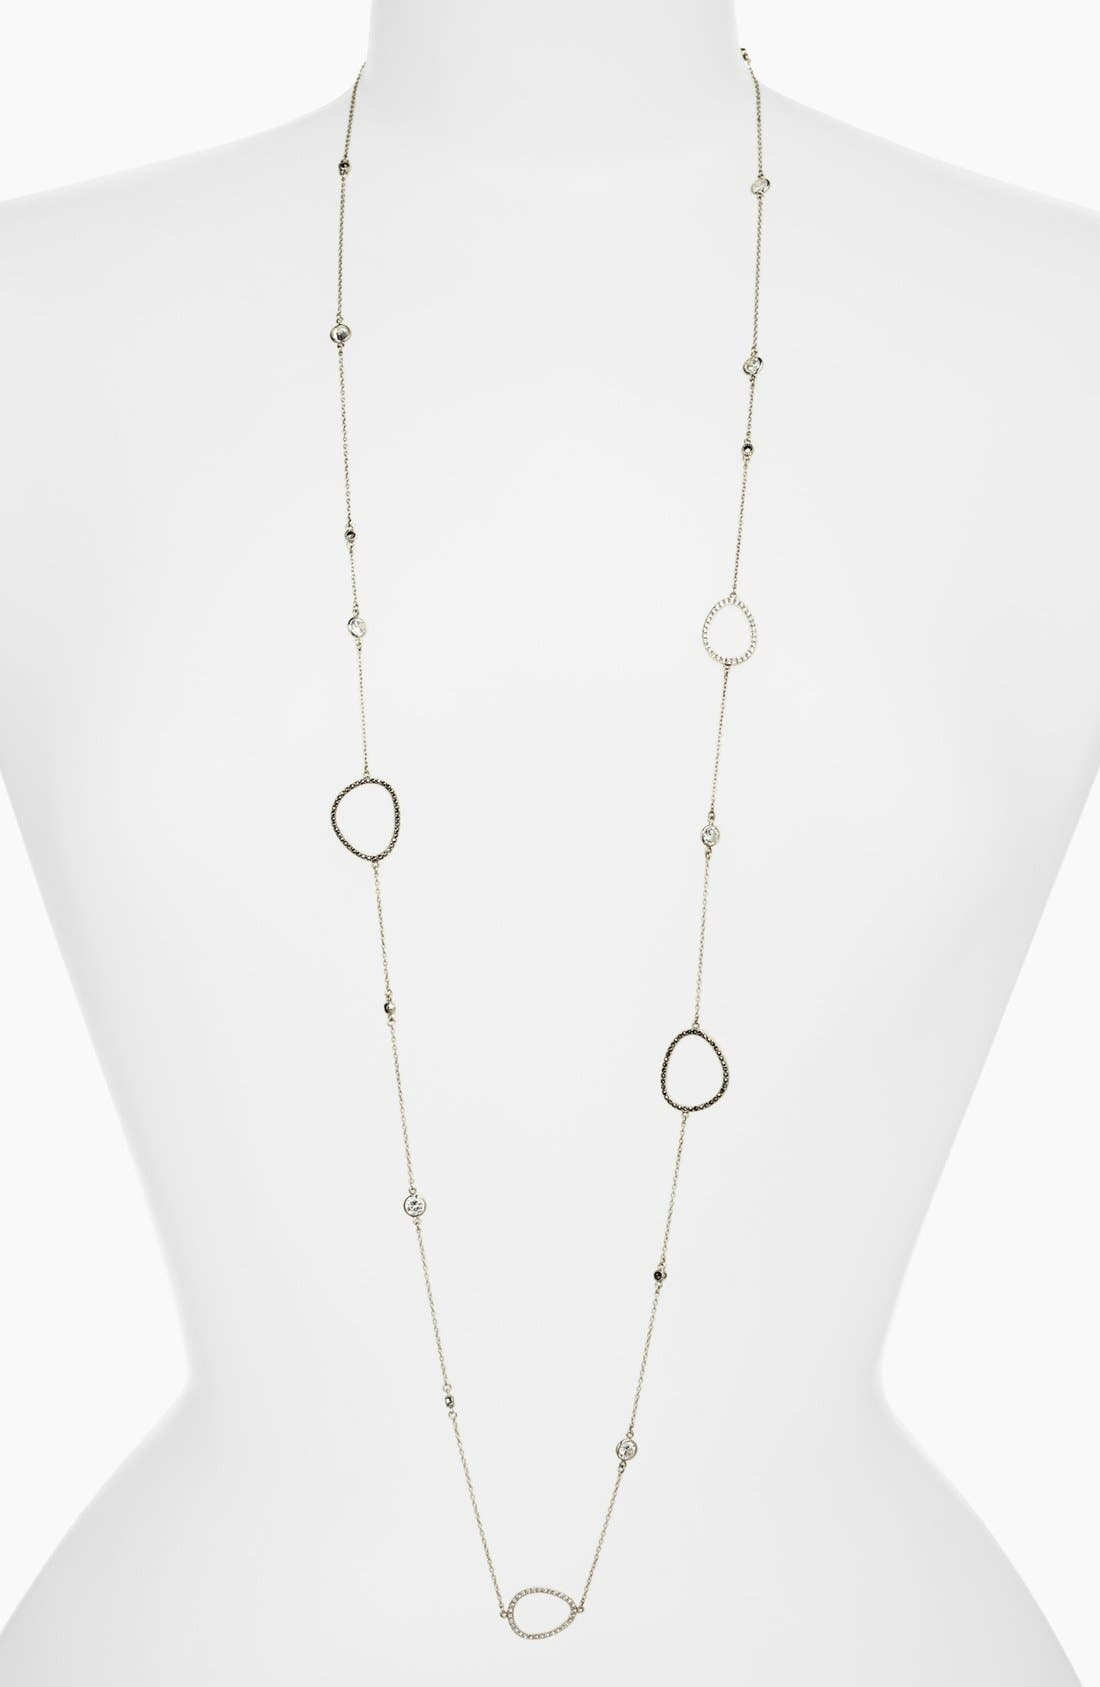 Alternate Image 1 Selected - Judith Jack 'Oahu' Extra Long Station Necklace